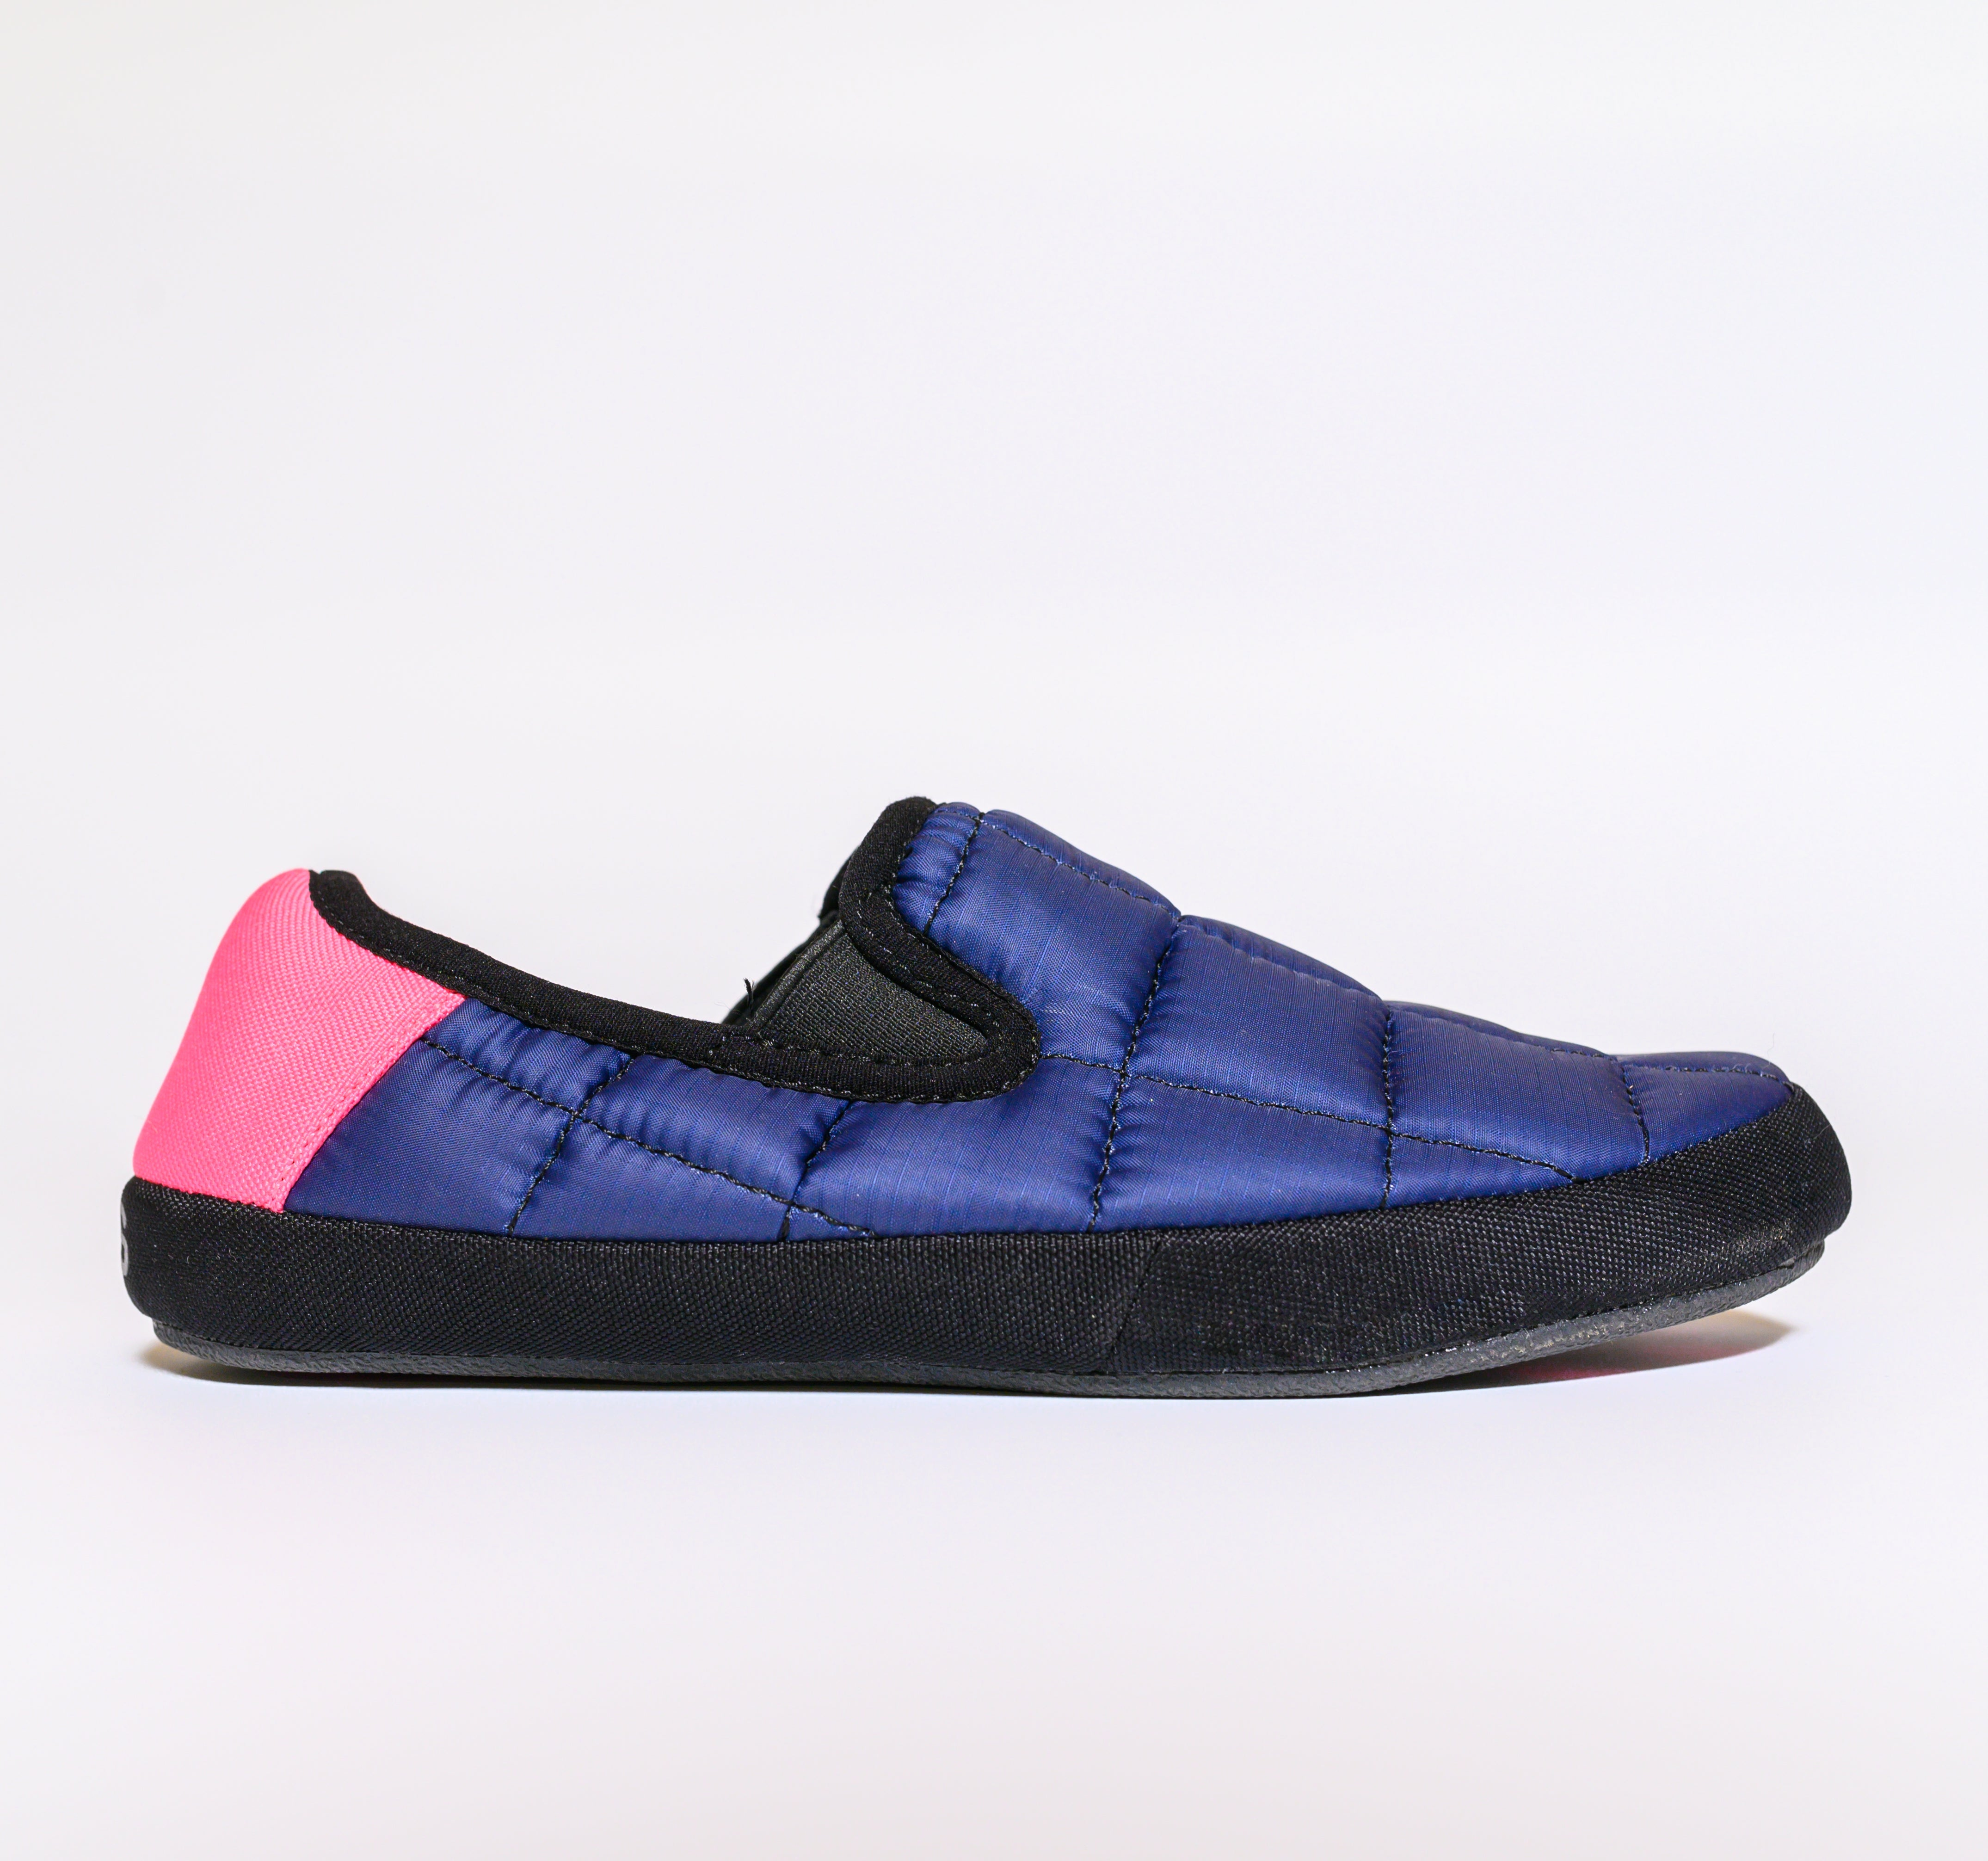 MALMOES WOMENS NAVY PINK